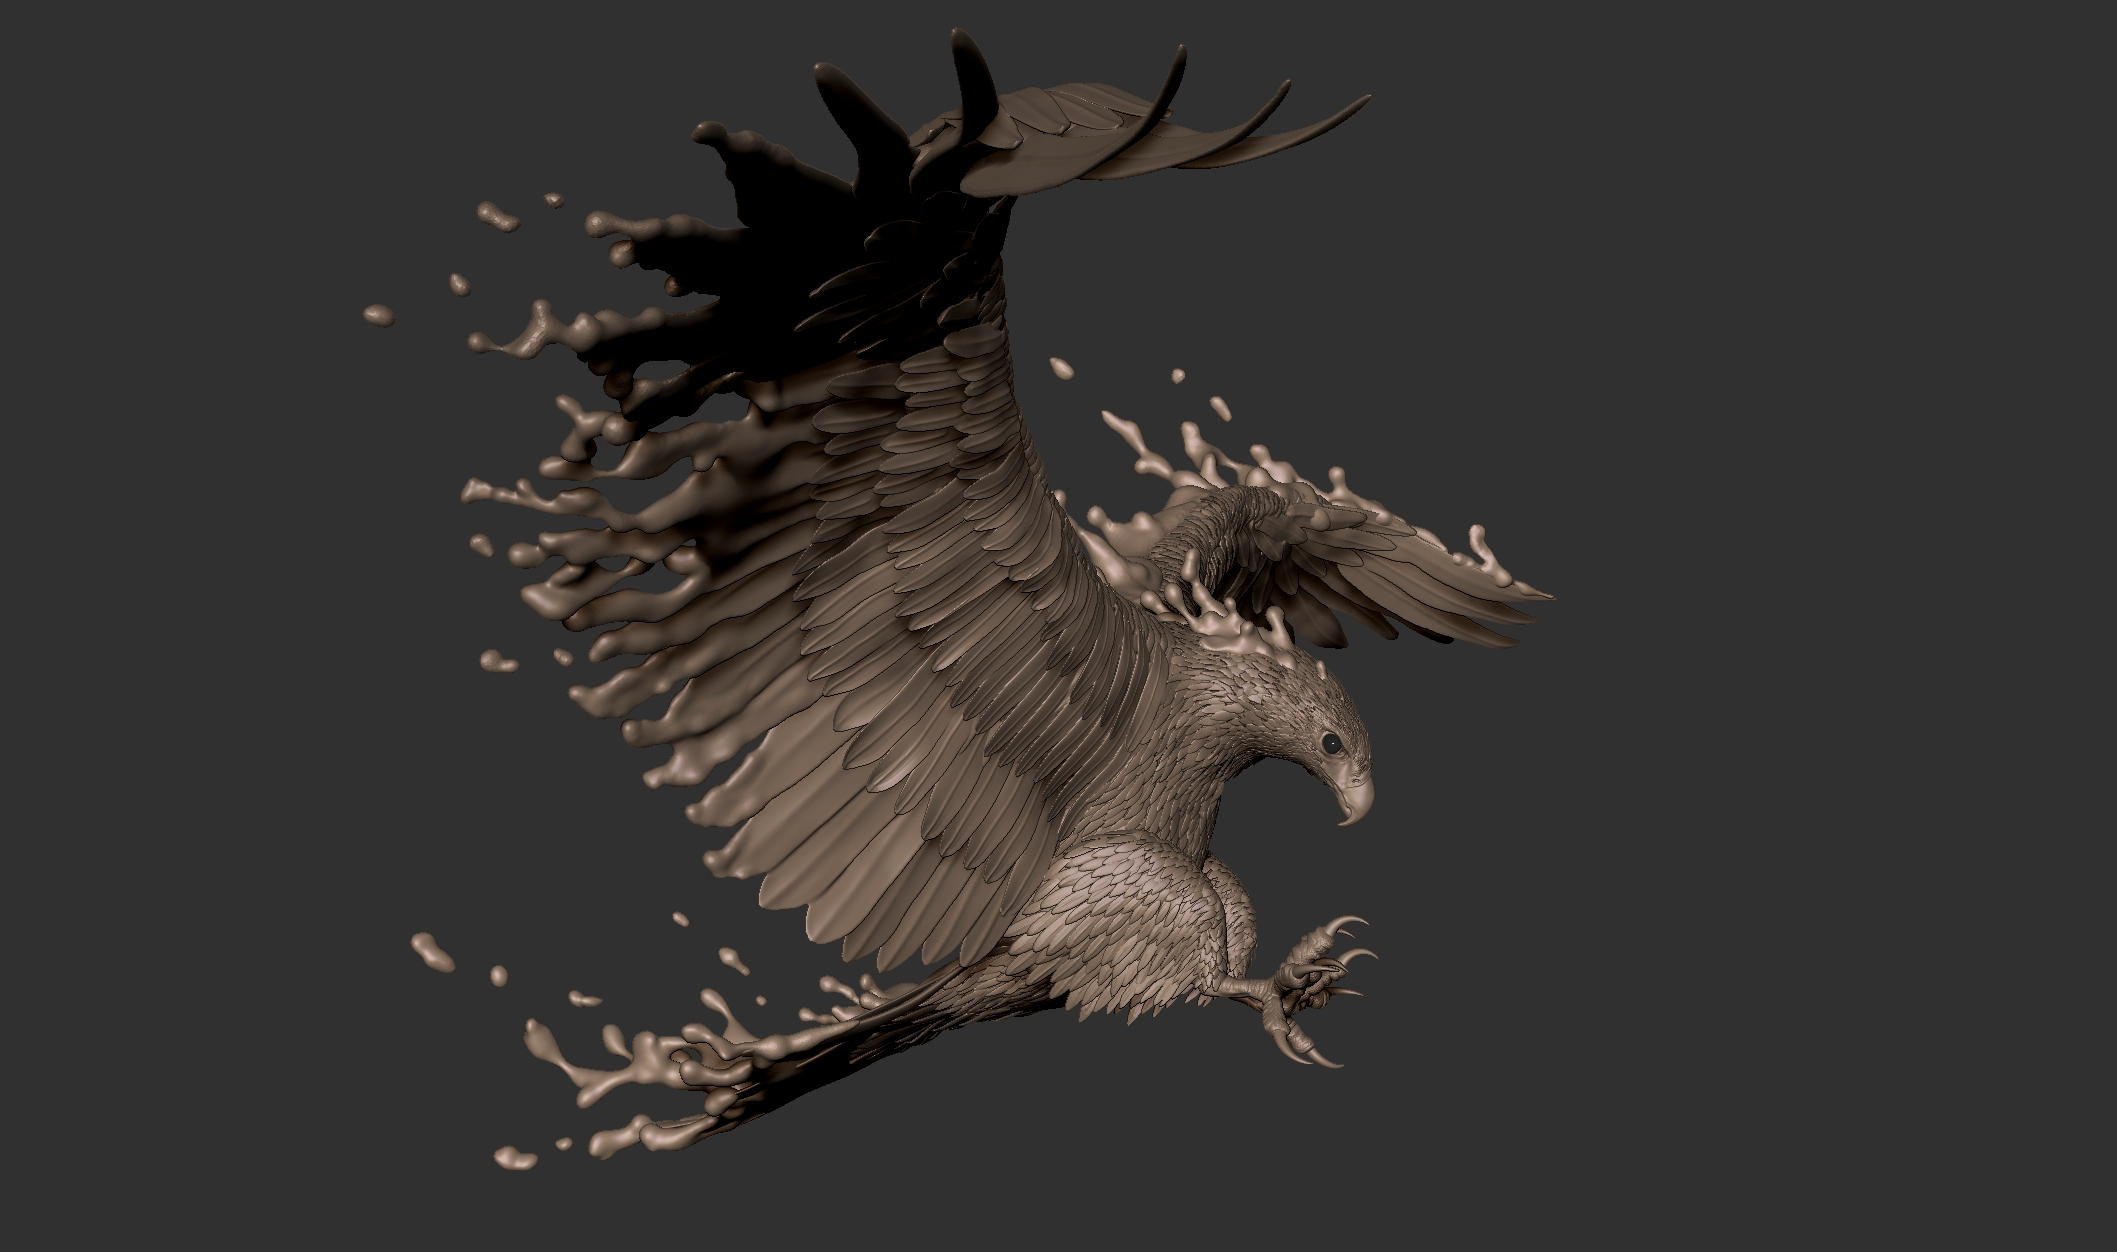 eagle_sculpt_005.jpg